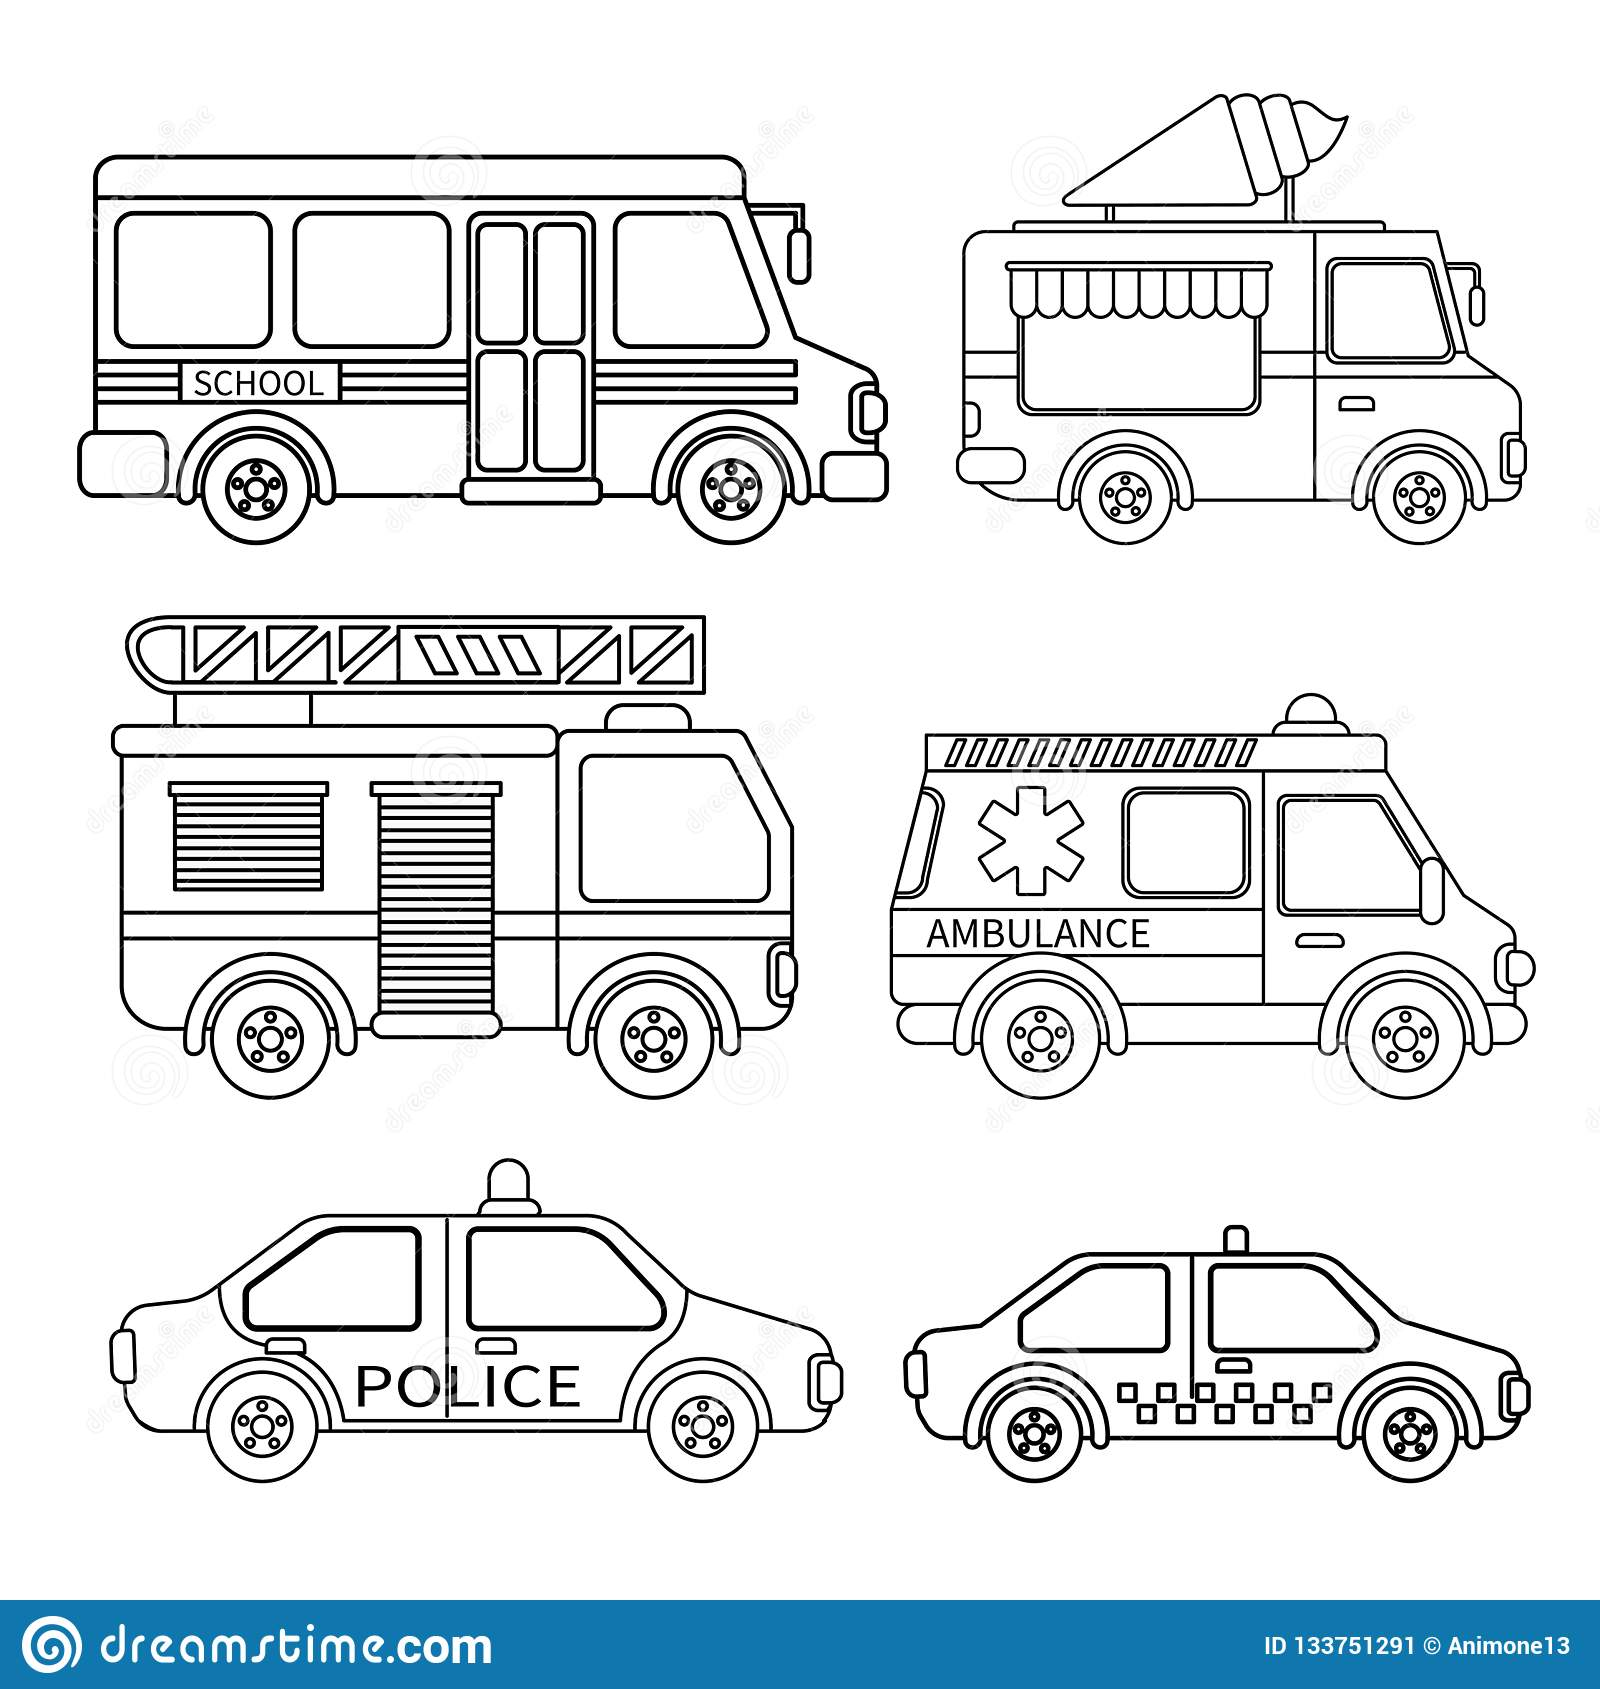 Vector Set Of Special Transport Stock Vector Illustration Of Fire Cream 133751291